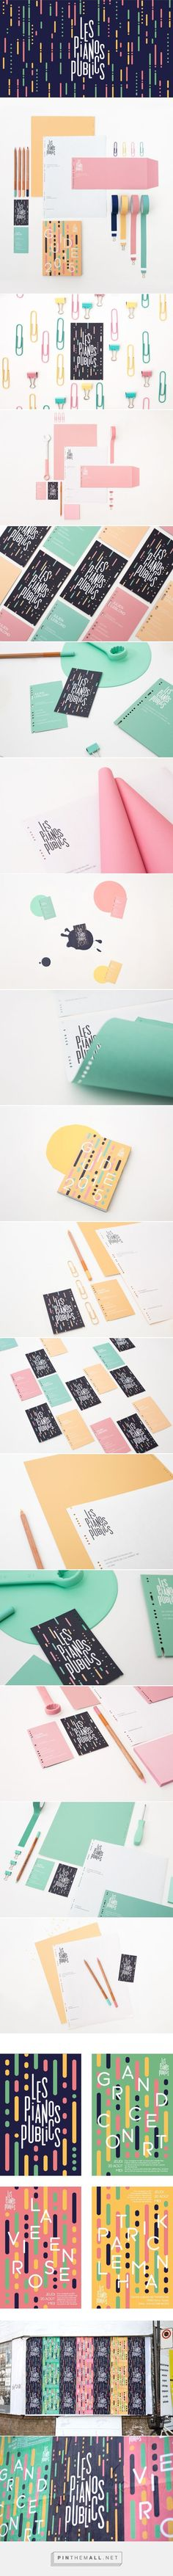 Les Pianos Publics Branding on Behance | Fivestar Branding. JUST GORGEOUS!